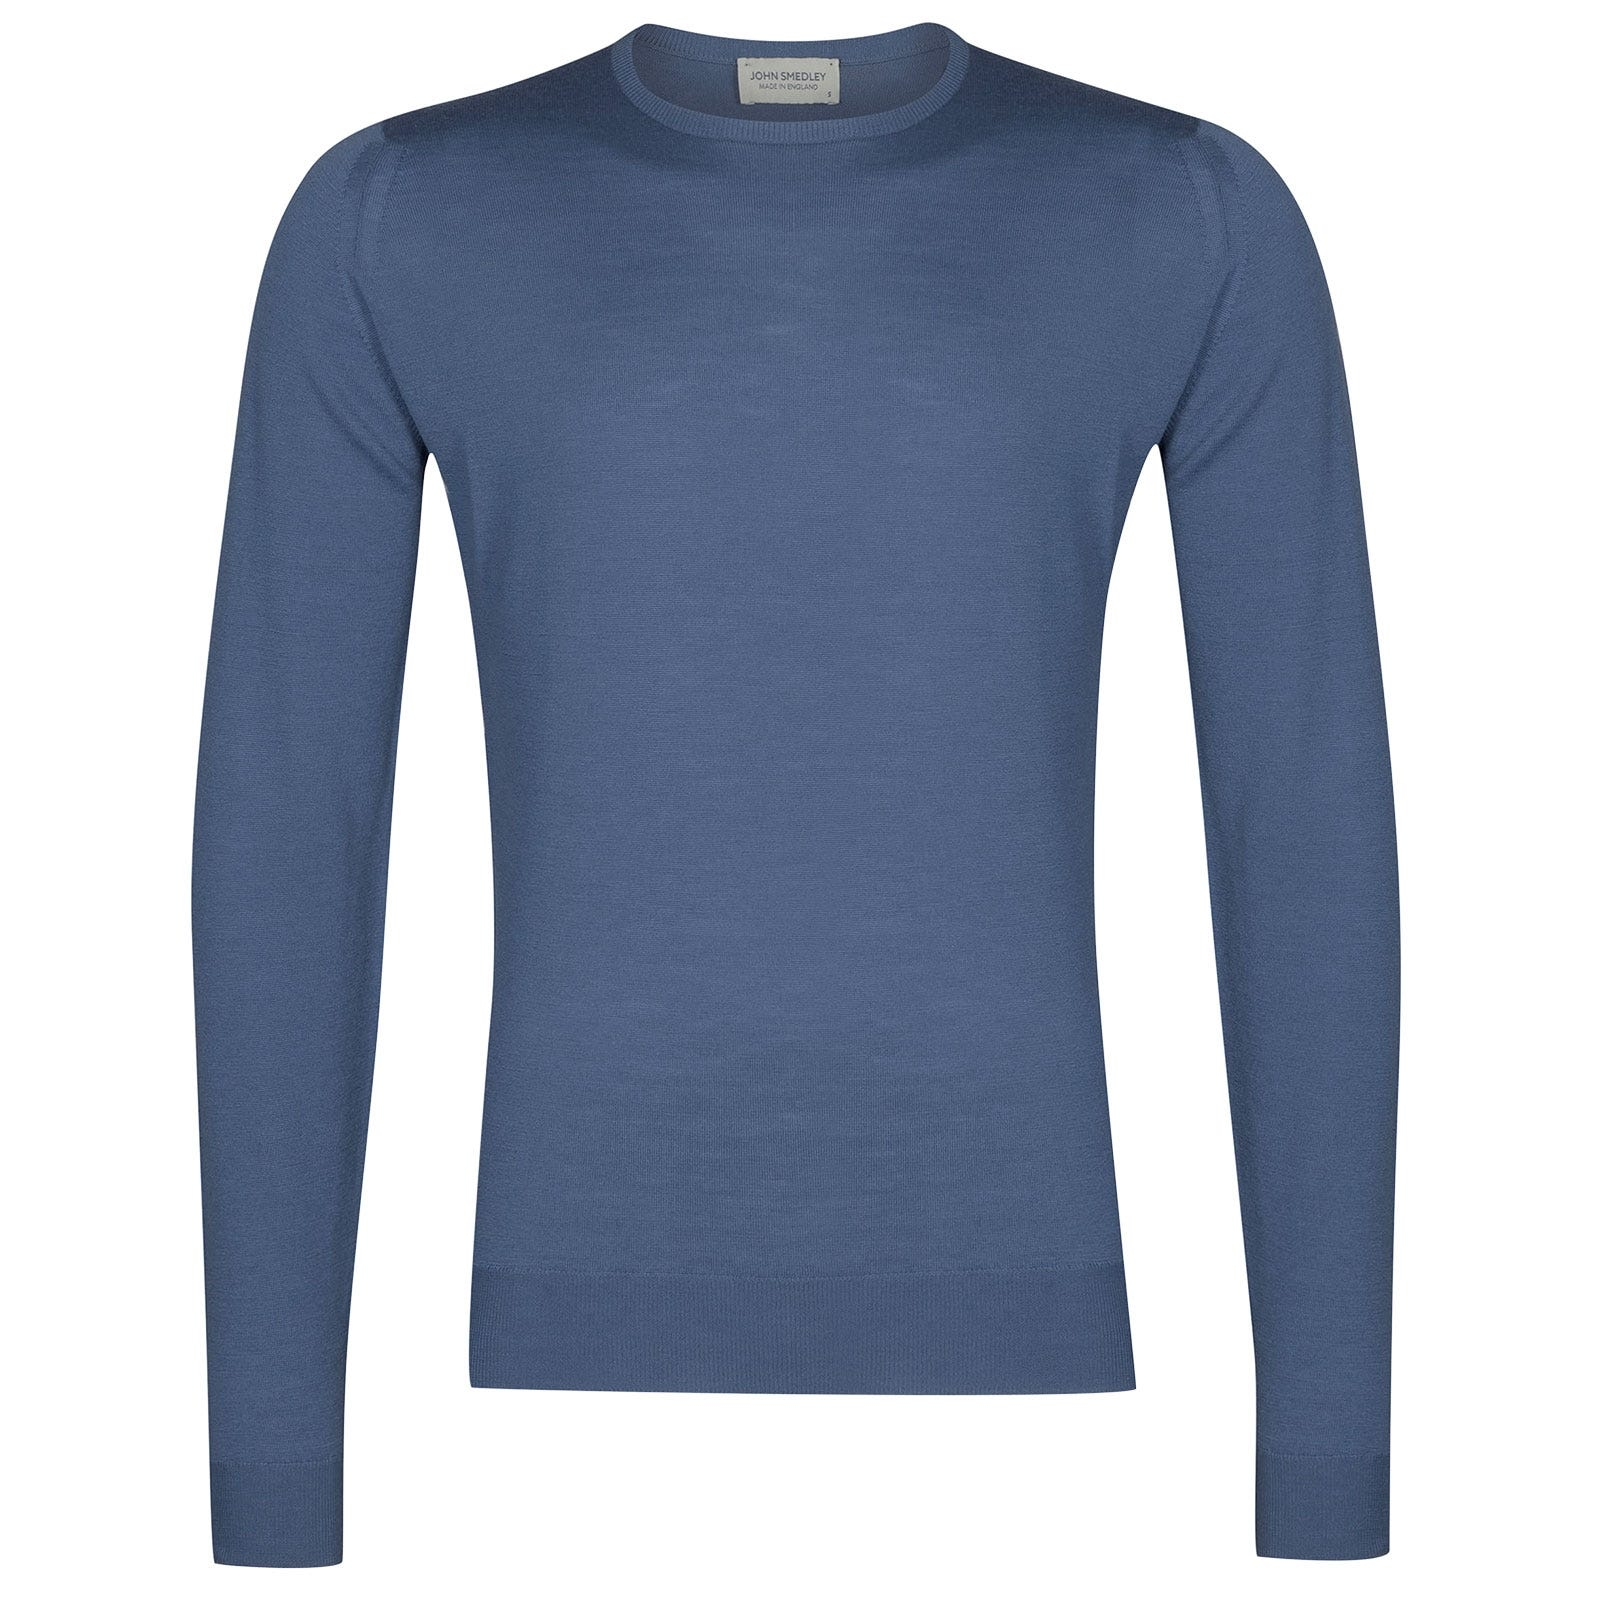 John Smedley Lundy in Blue Iris Pullover-SML